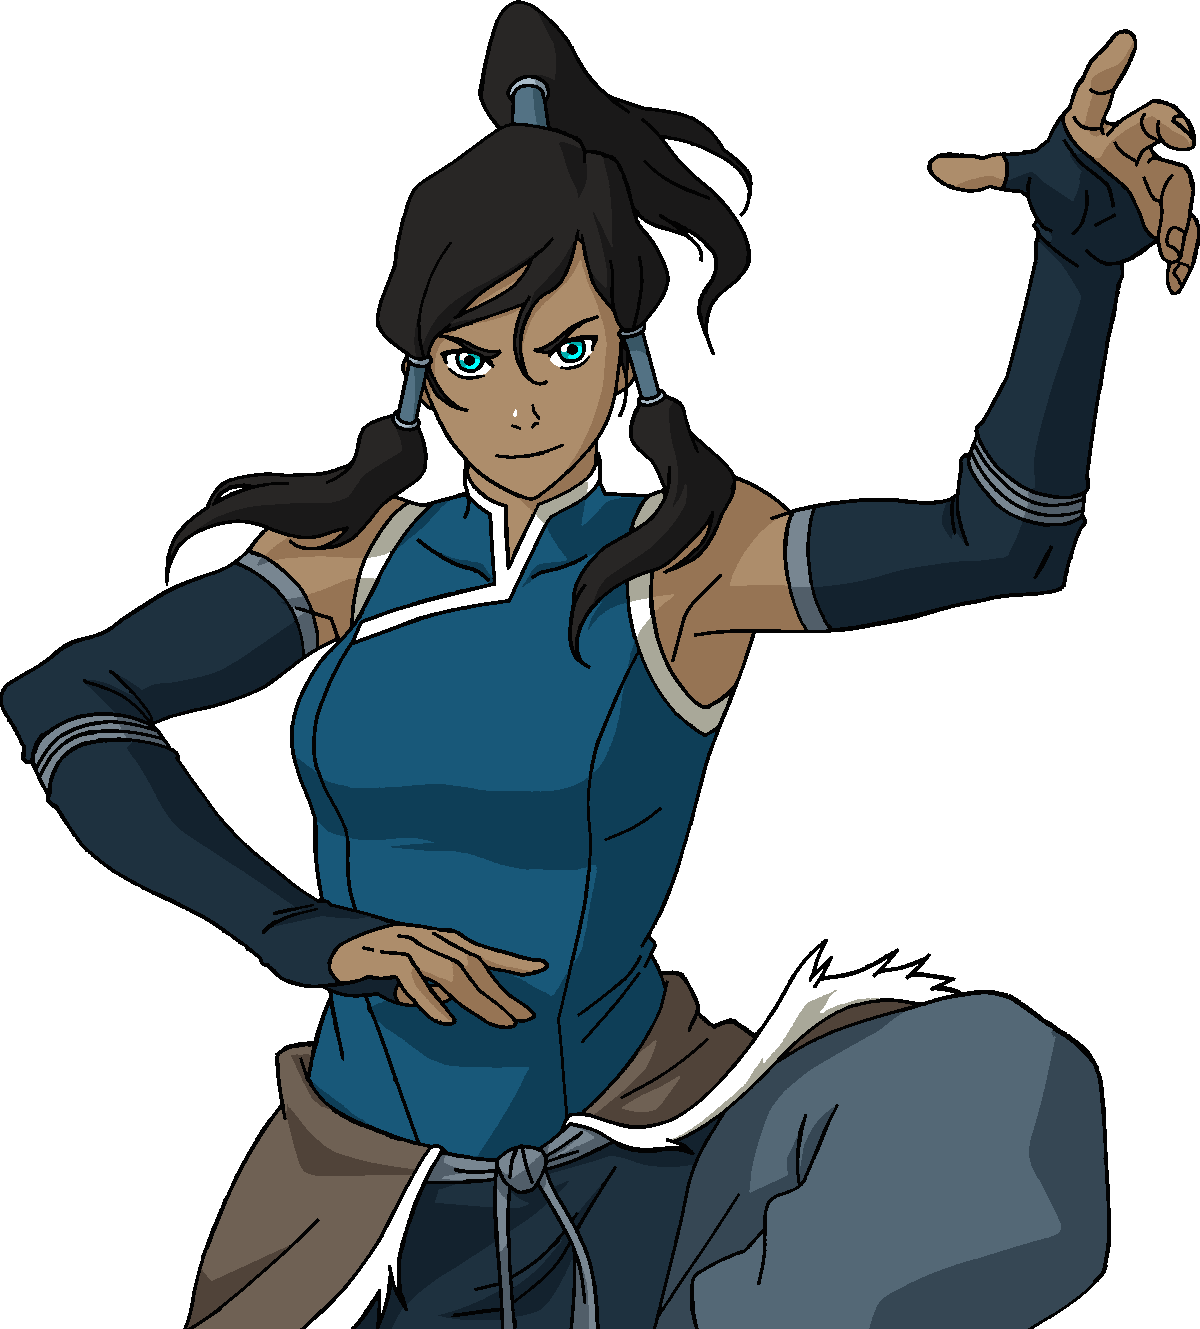 Flappers drawing korra. By steeven on deviantart